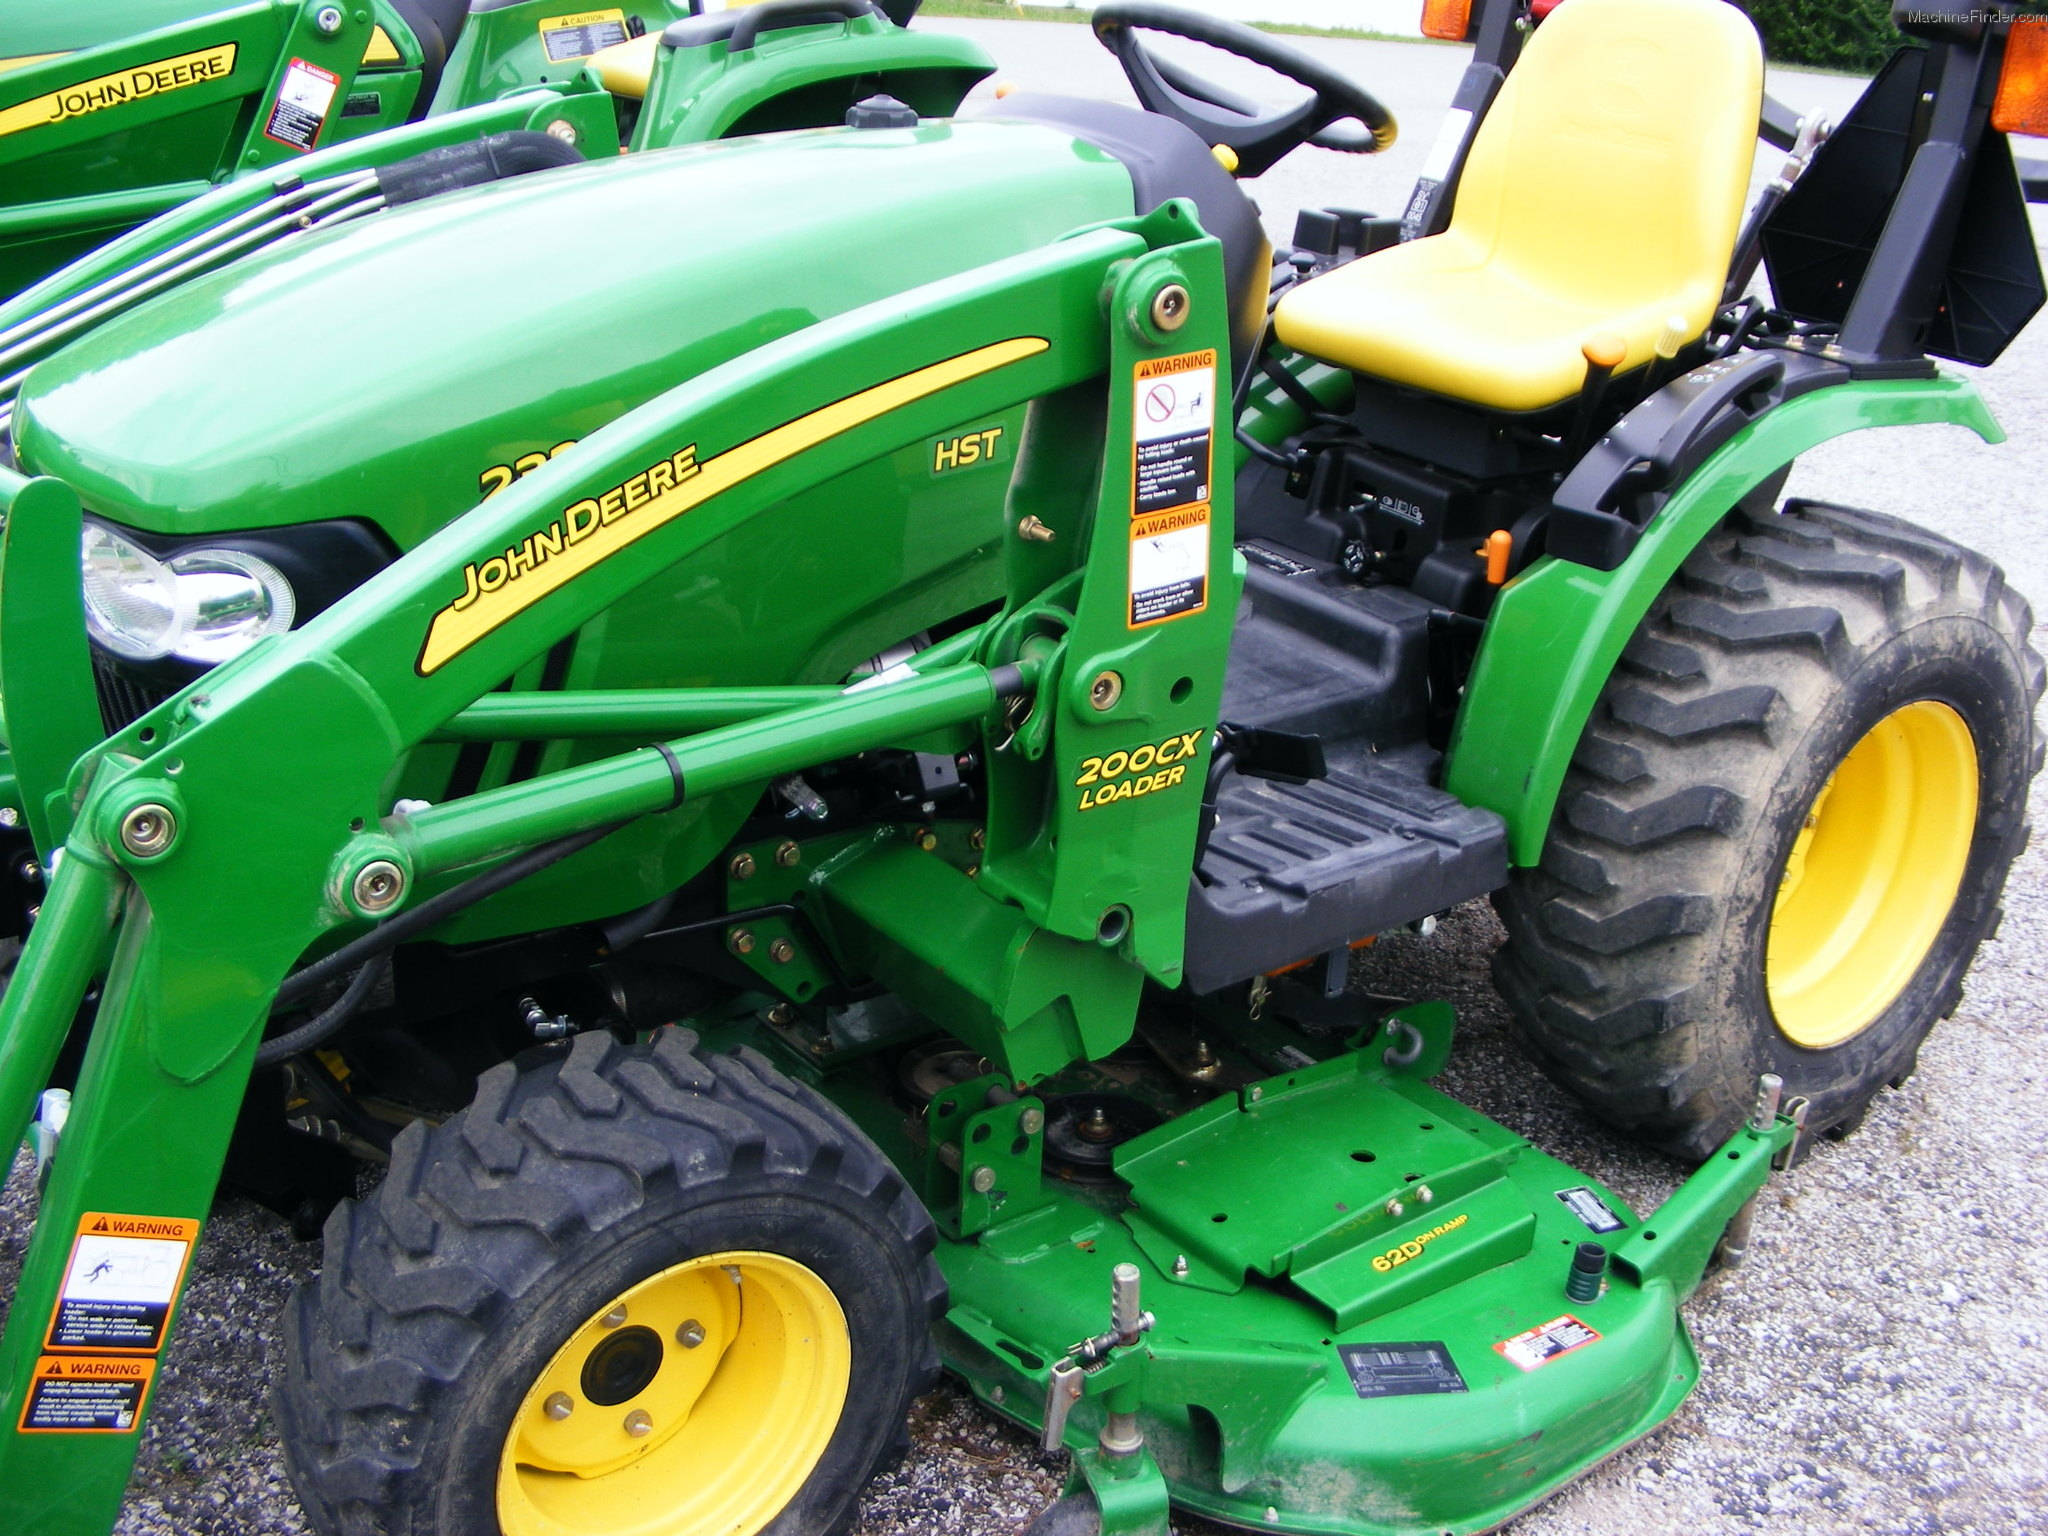 2009 john deere 2320 tractors compact 1 40hp john. Black Bedroom Furniture Sets. Home Design Ideas